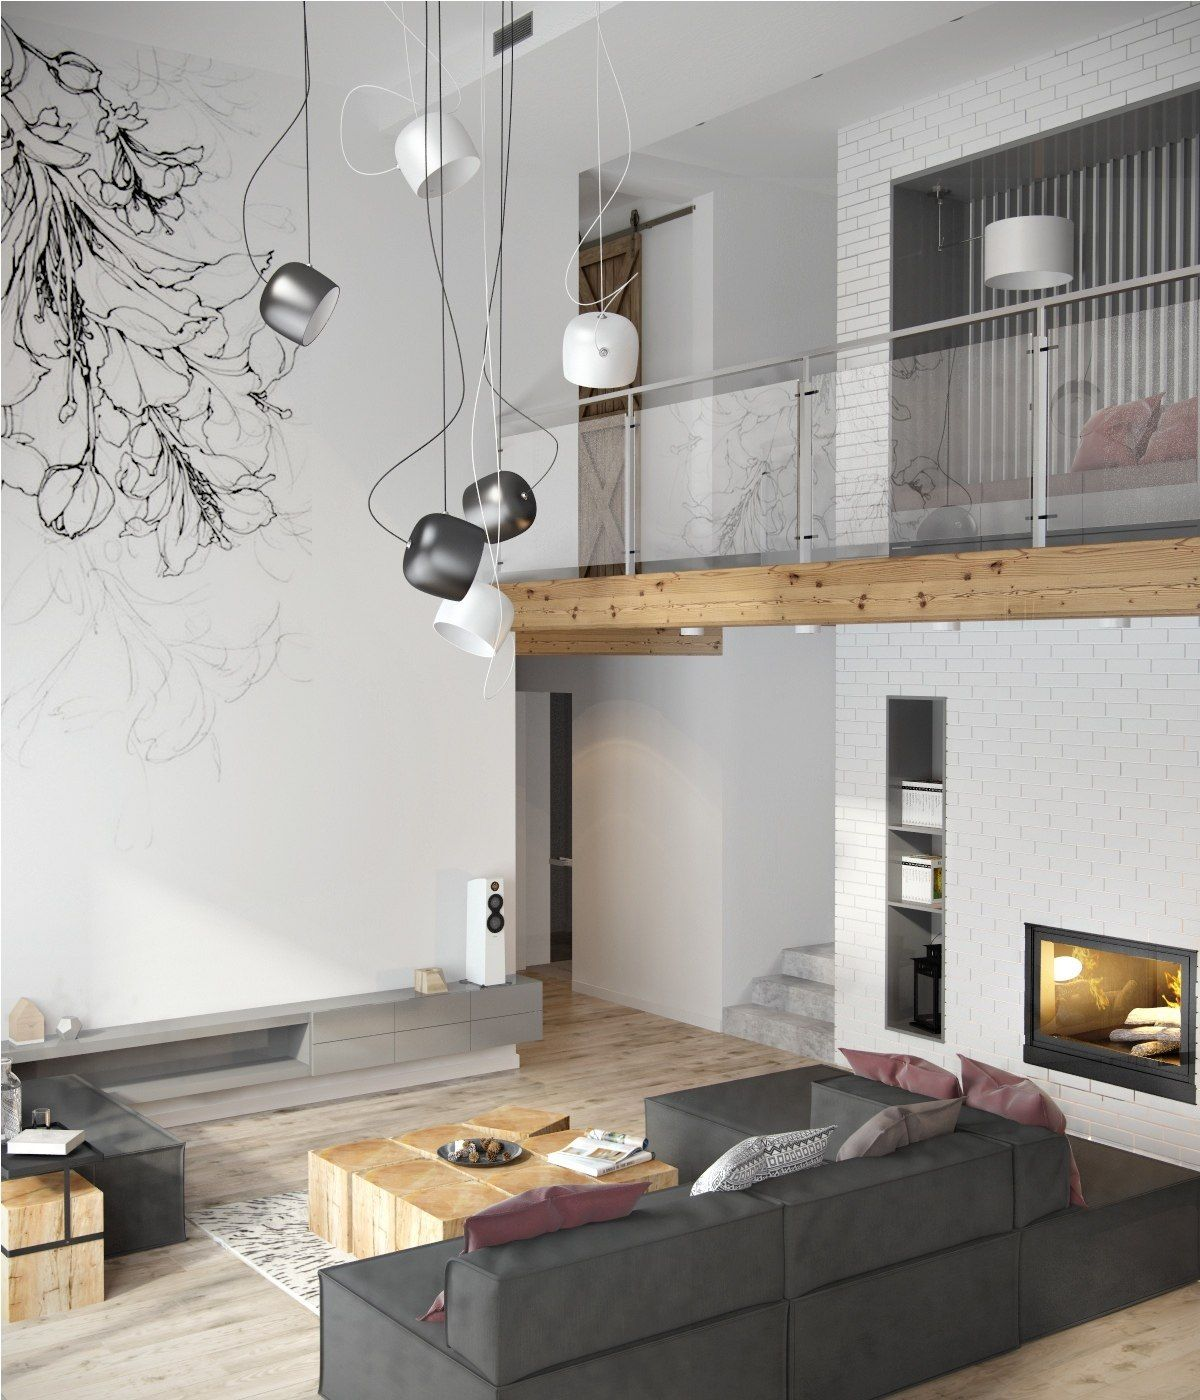 Minimalist Apartment Decorating Ideas With Gray Color